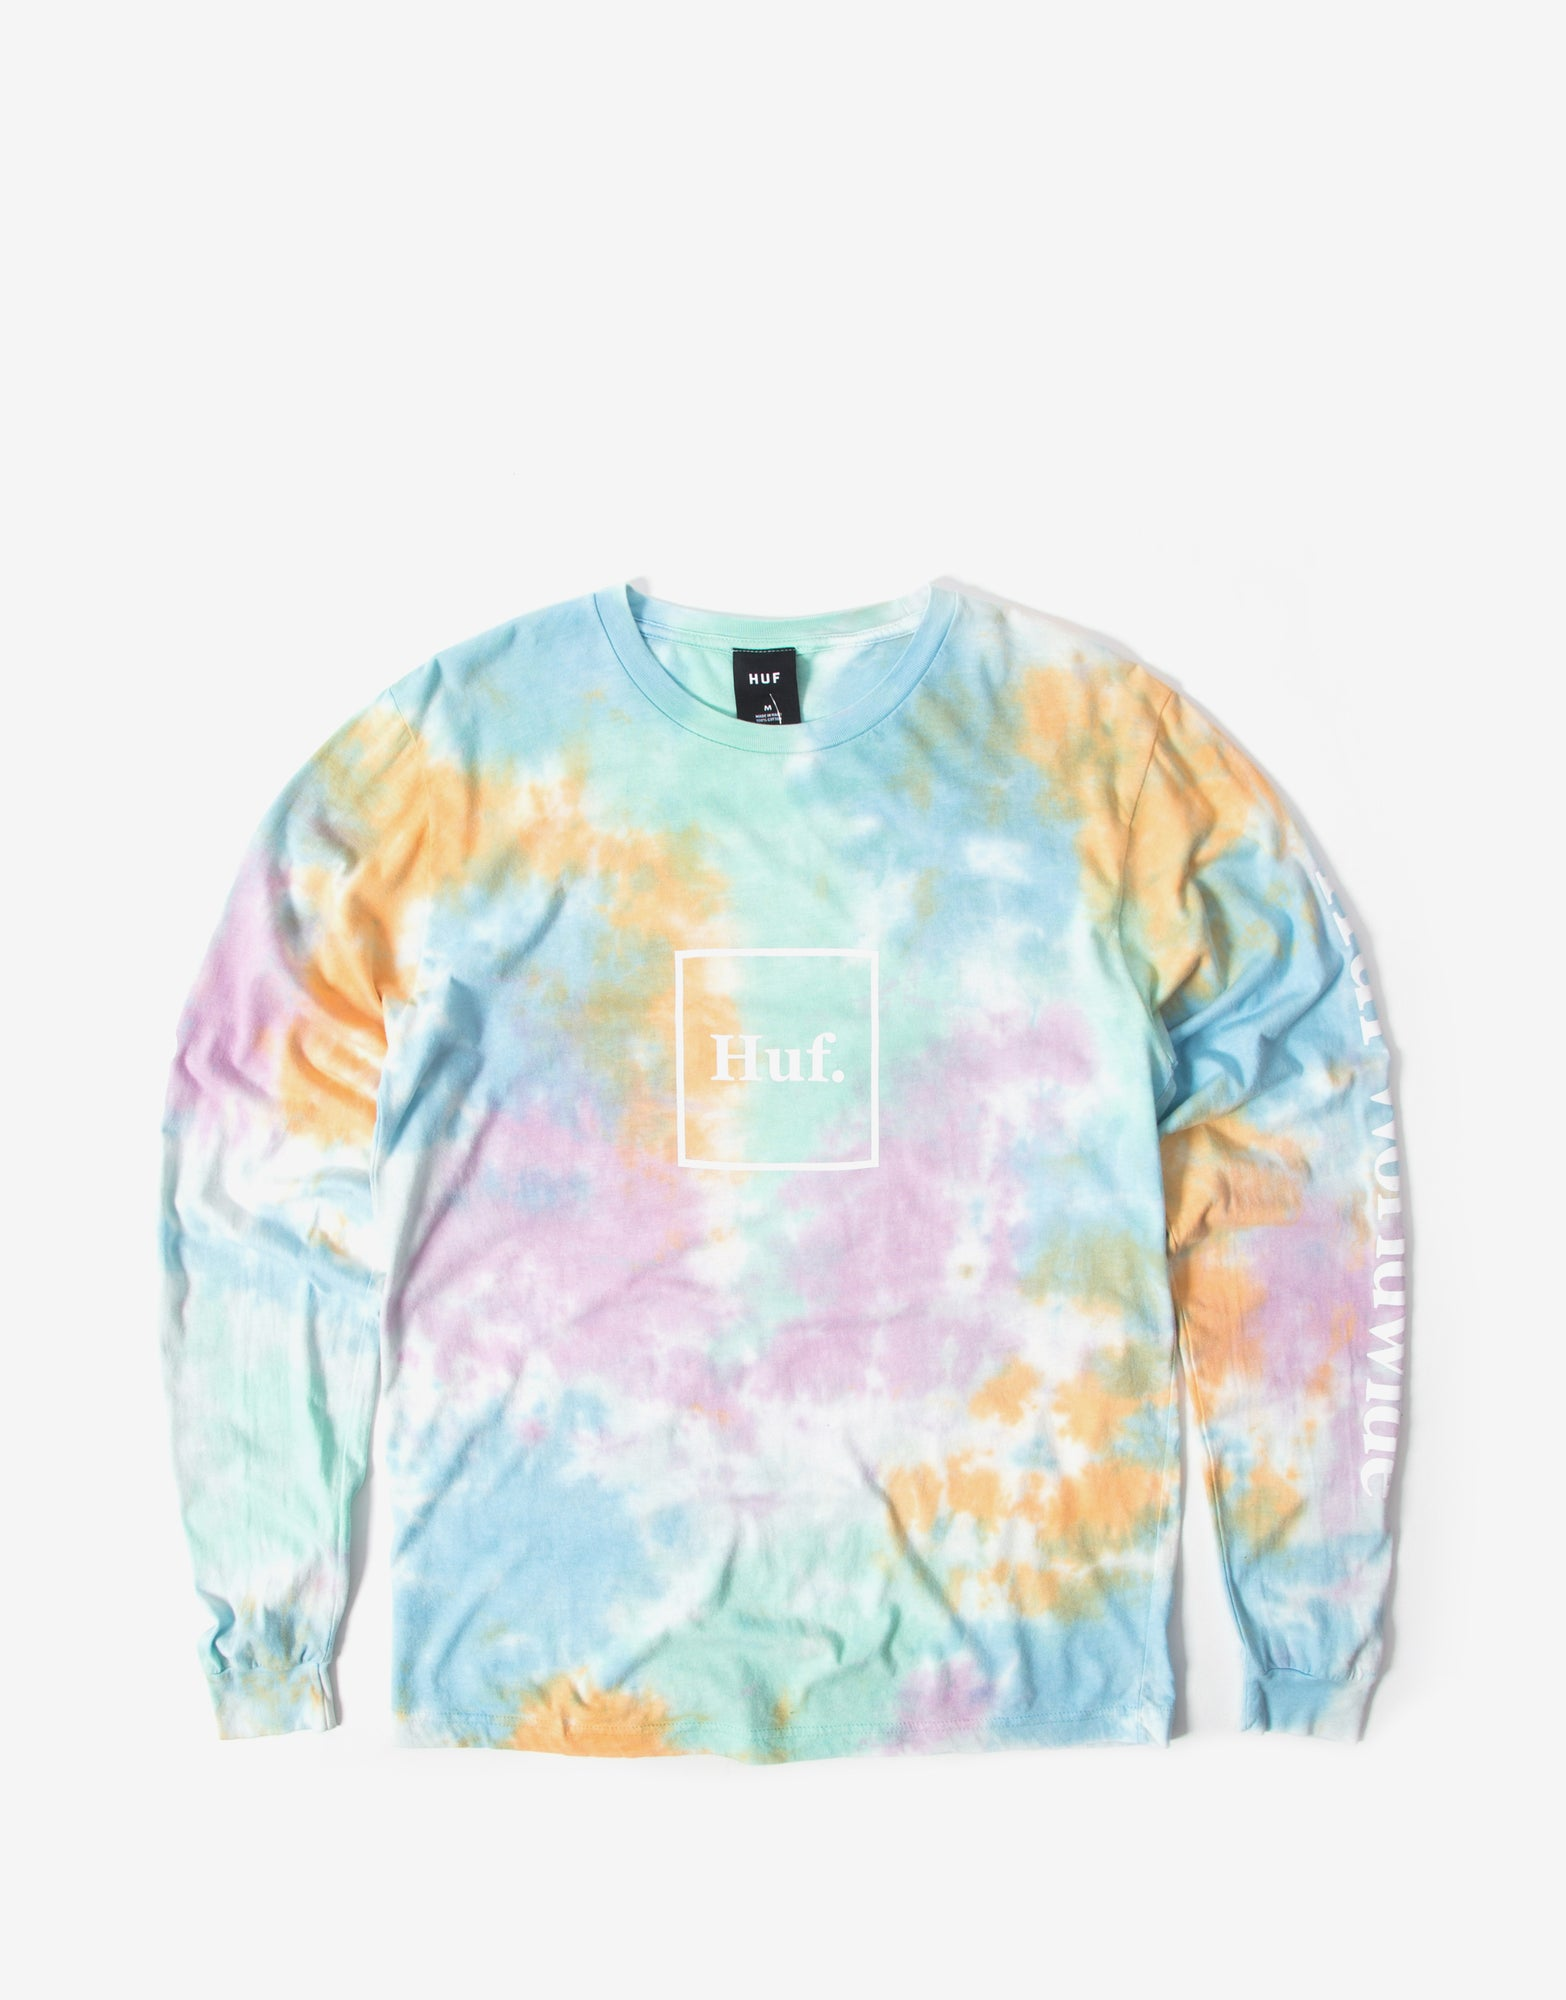 Huf Prism Wash Domestic long Sleeve T Shirt - White